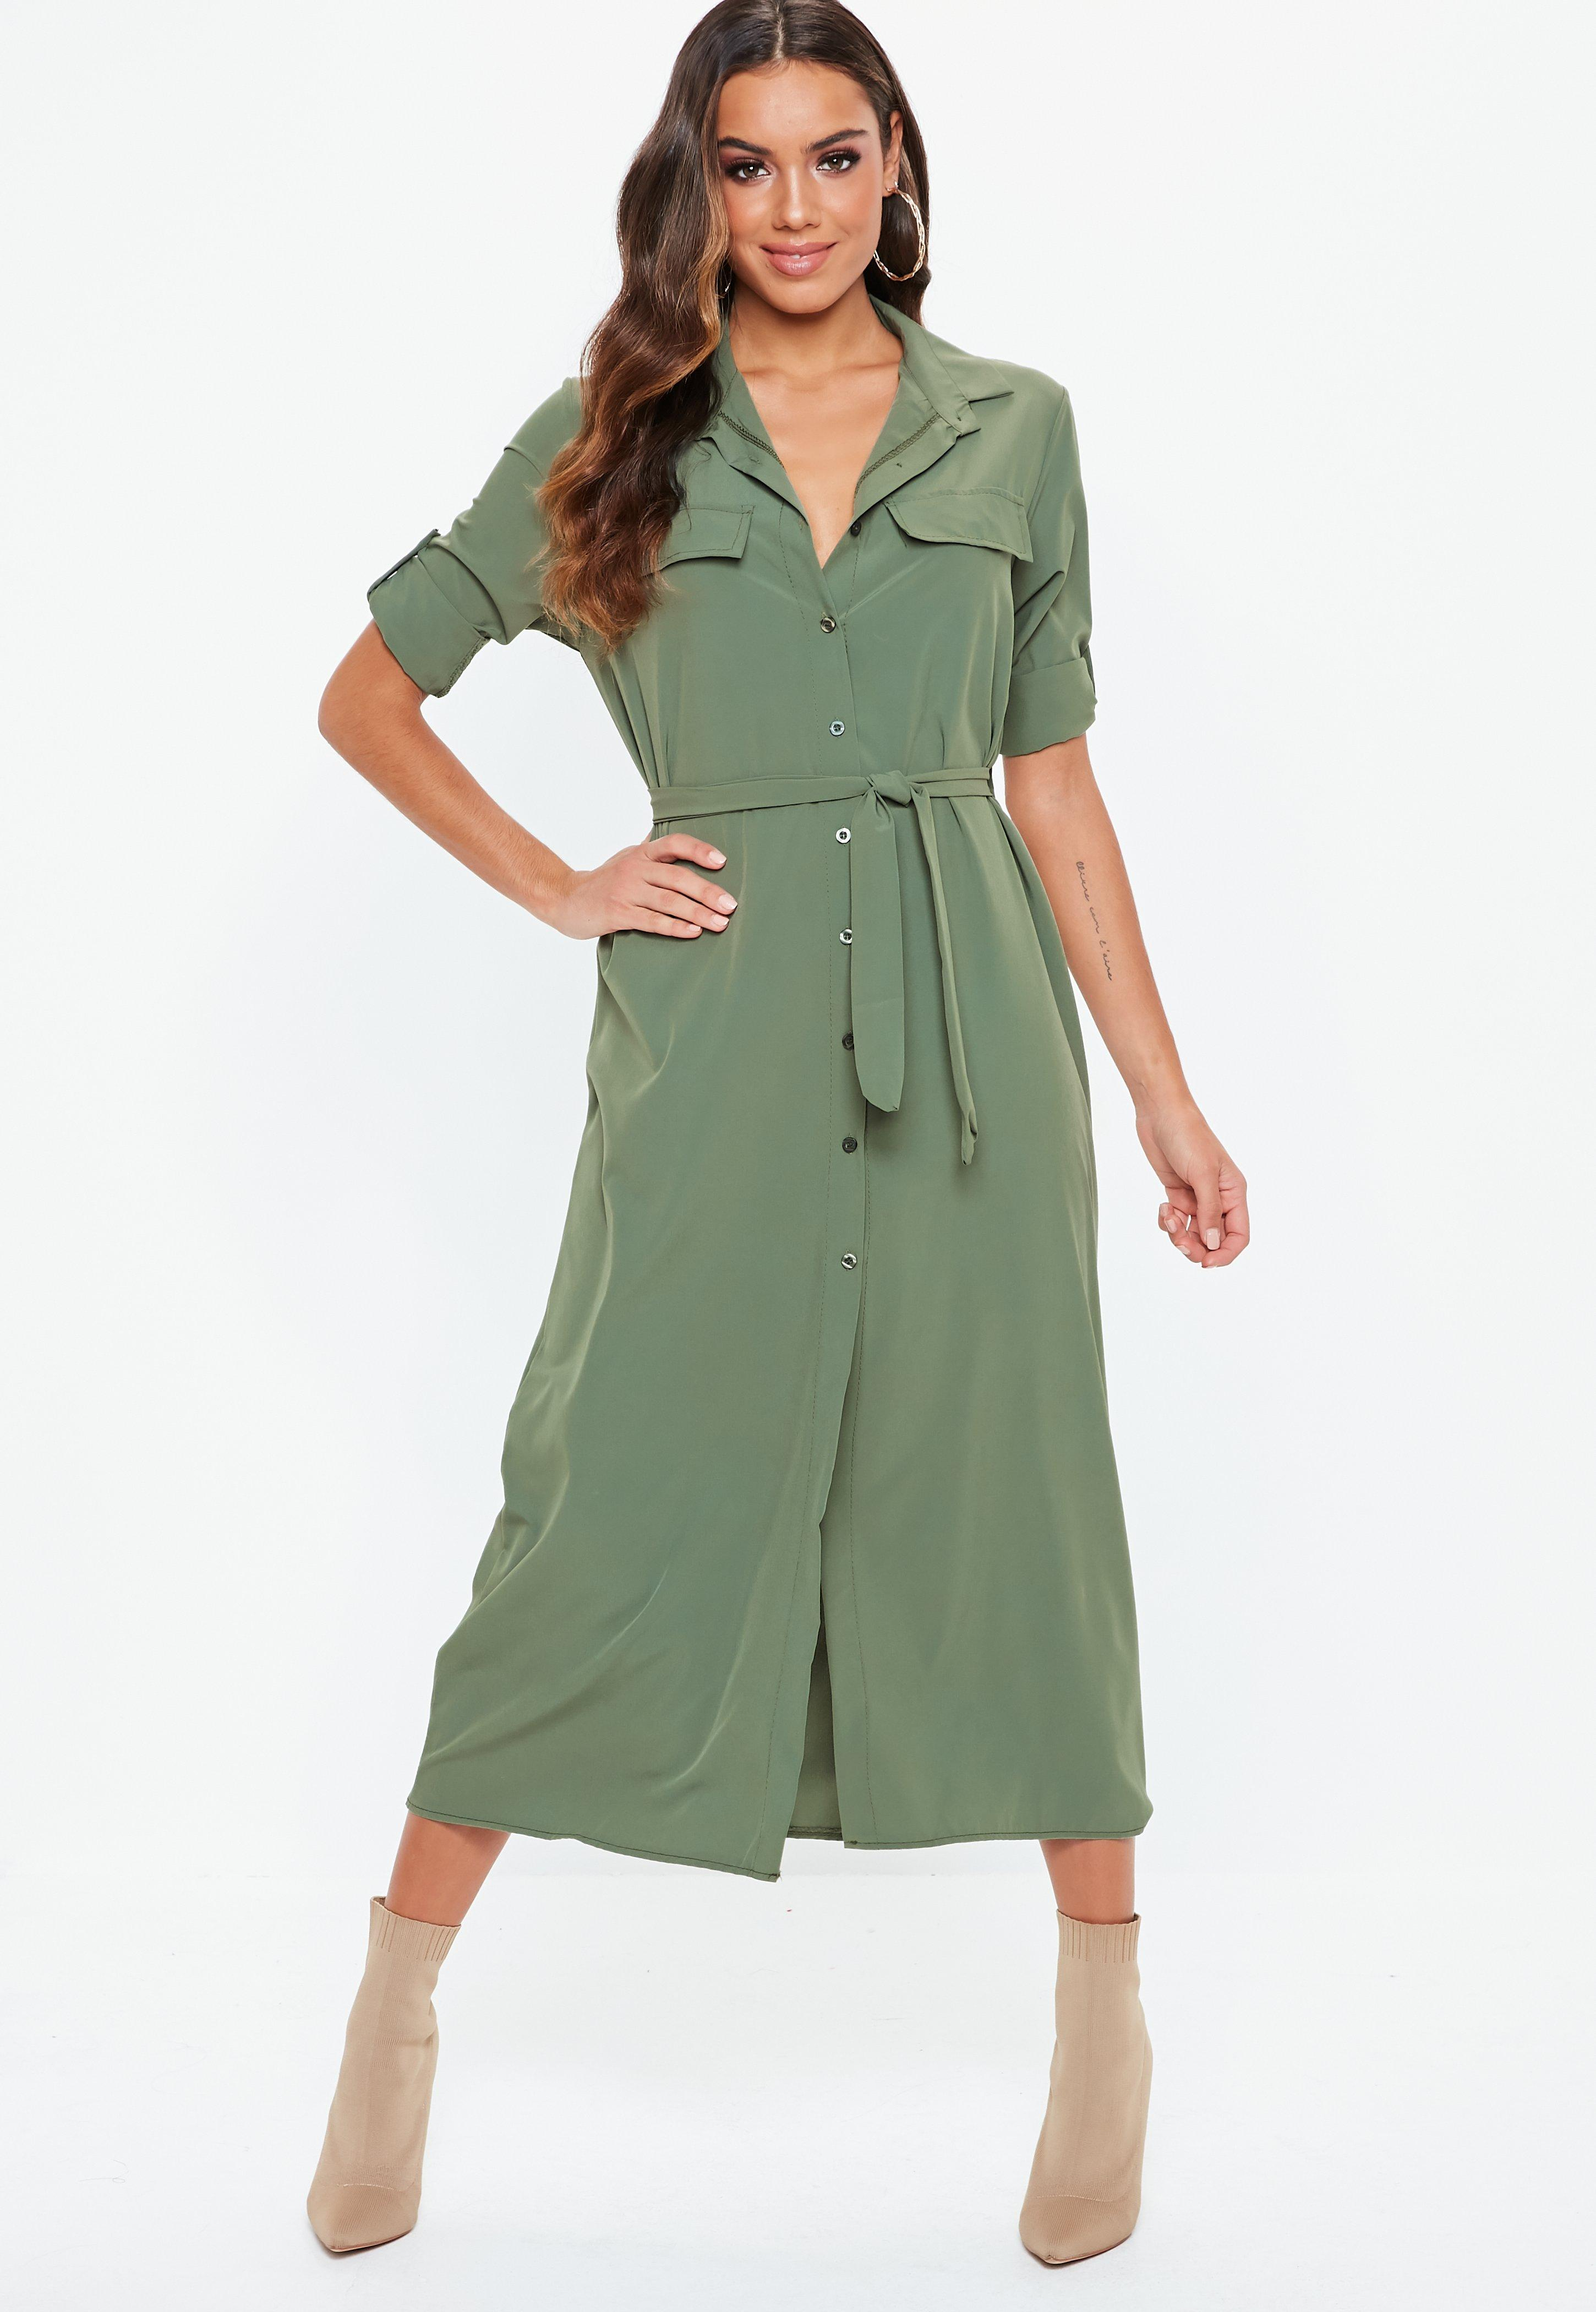 Long Shirt Dresses Dress Foto And Picture